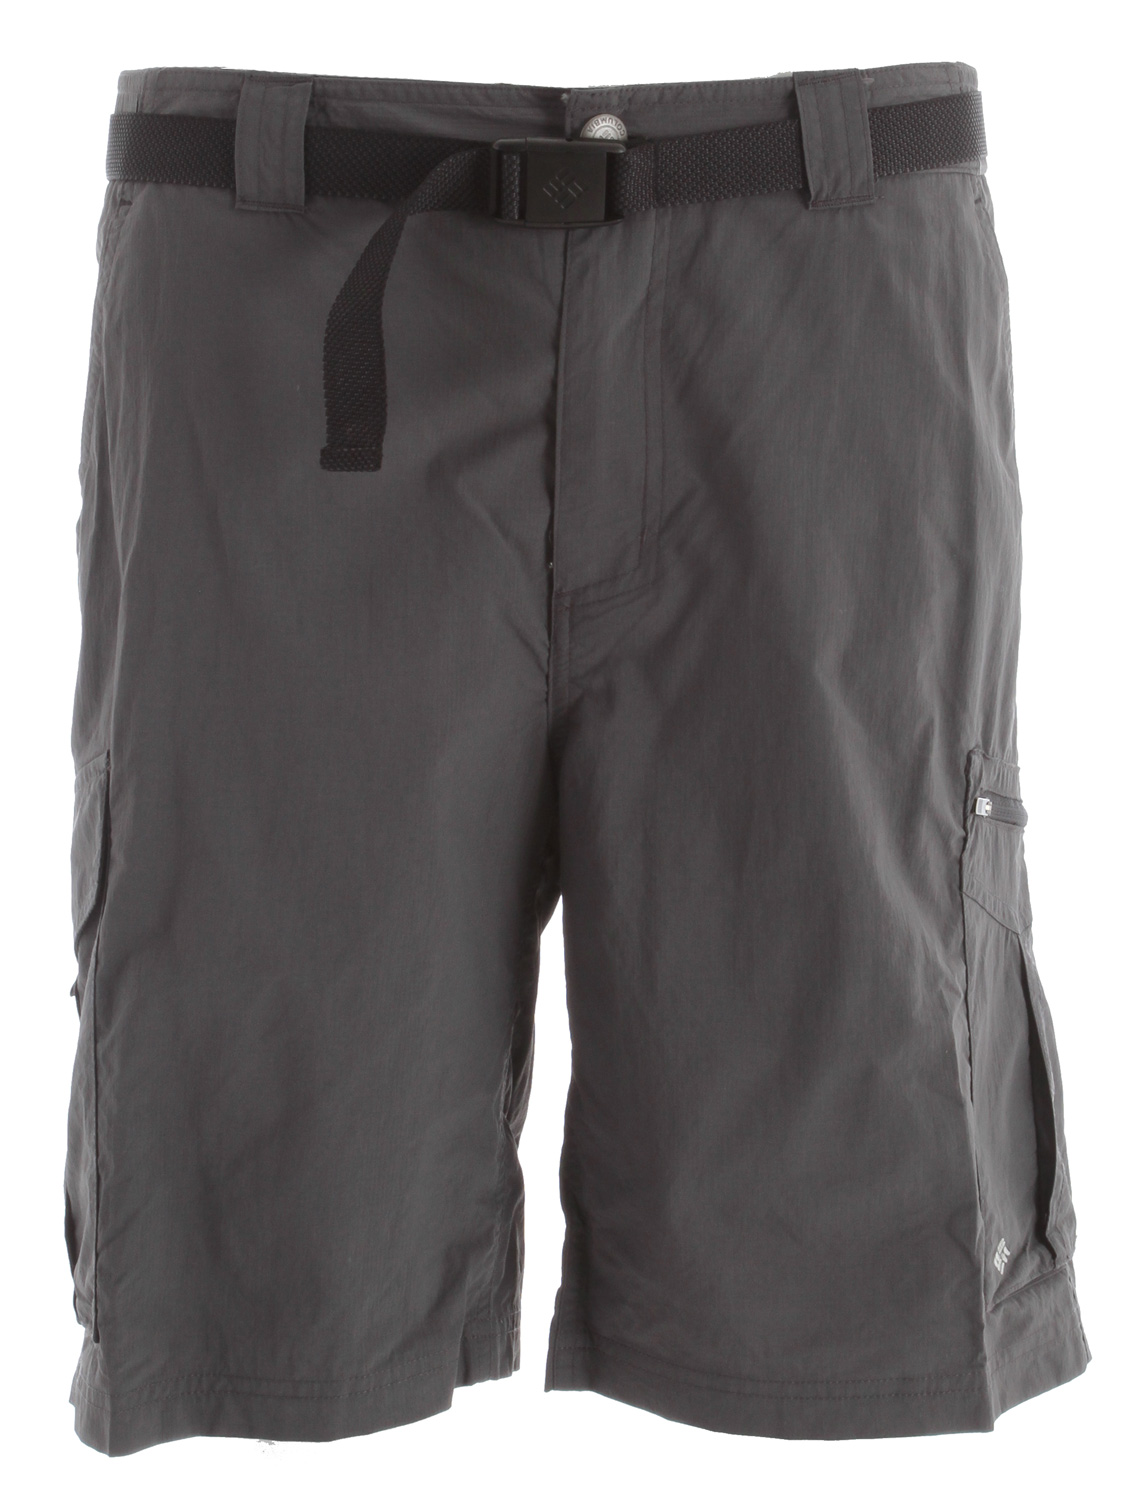 Key Features of the Columbia Silver Ridge Cargo Shorts: 100% nylon Silver Ridge ripstop, 57% recycled polyester/43% polyester mesh Omni-Shade™ UPF 50 sun protection Omni-Wick™ Classic fit Side-elastic waistband Gusset detail Hook and loop closure Zip-closed security pocket Hand pockets Mesh pocket bags - $27.95